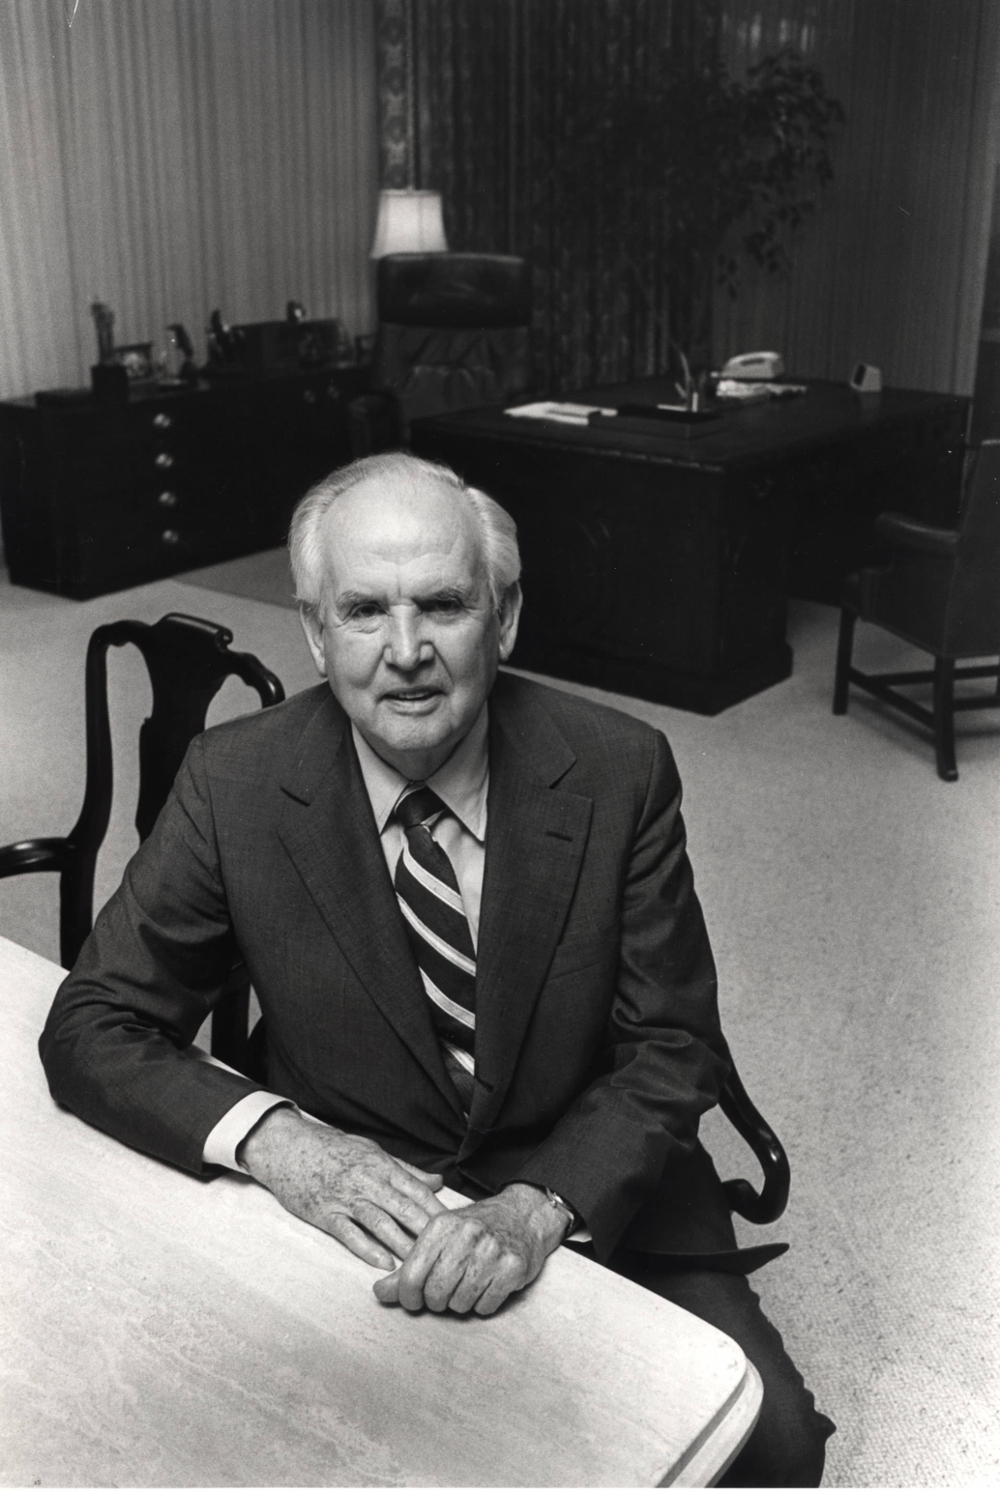 O. Wayne Rollins in his office